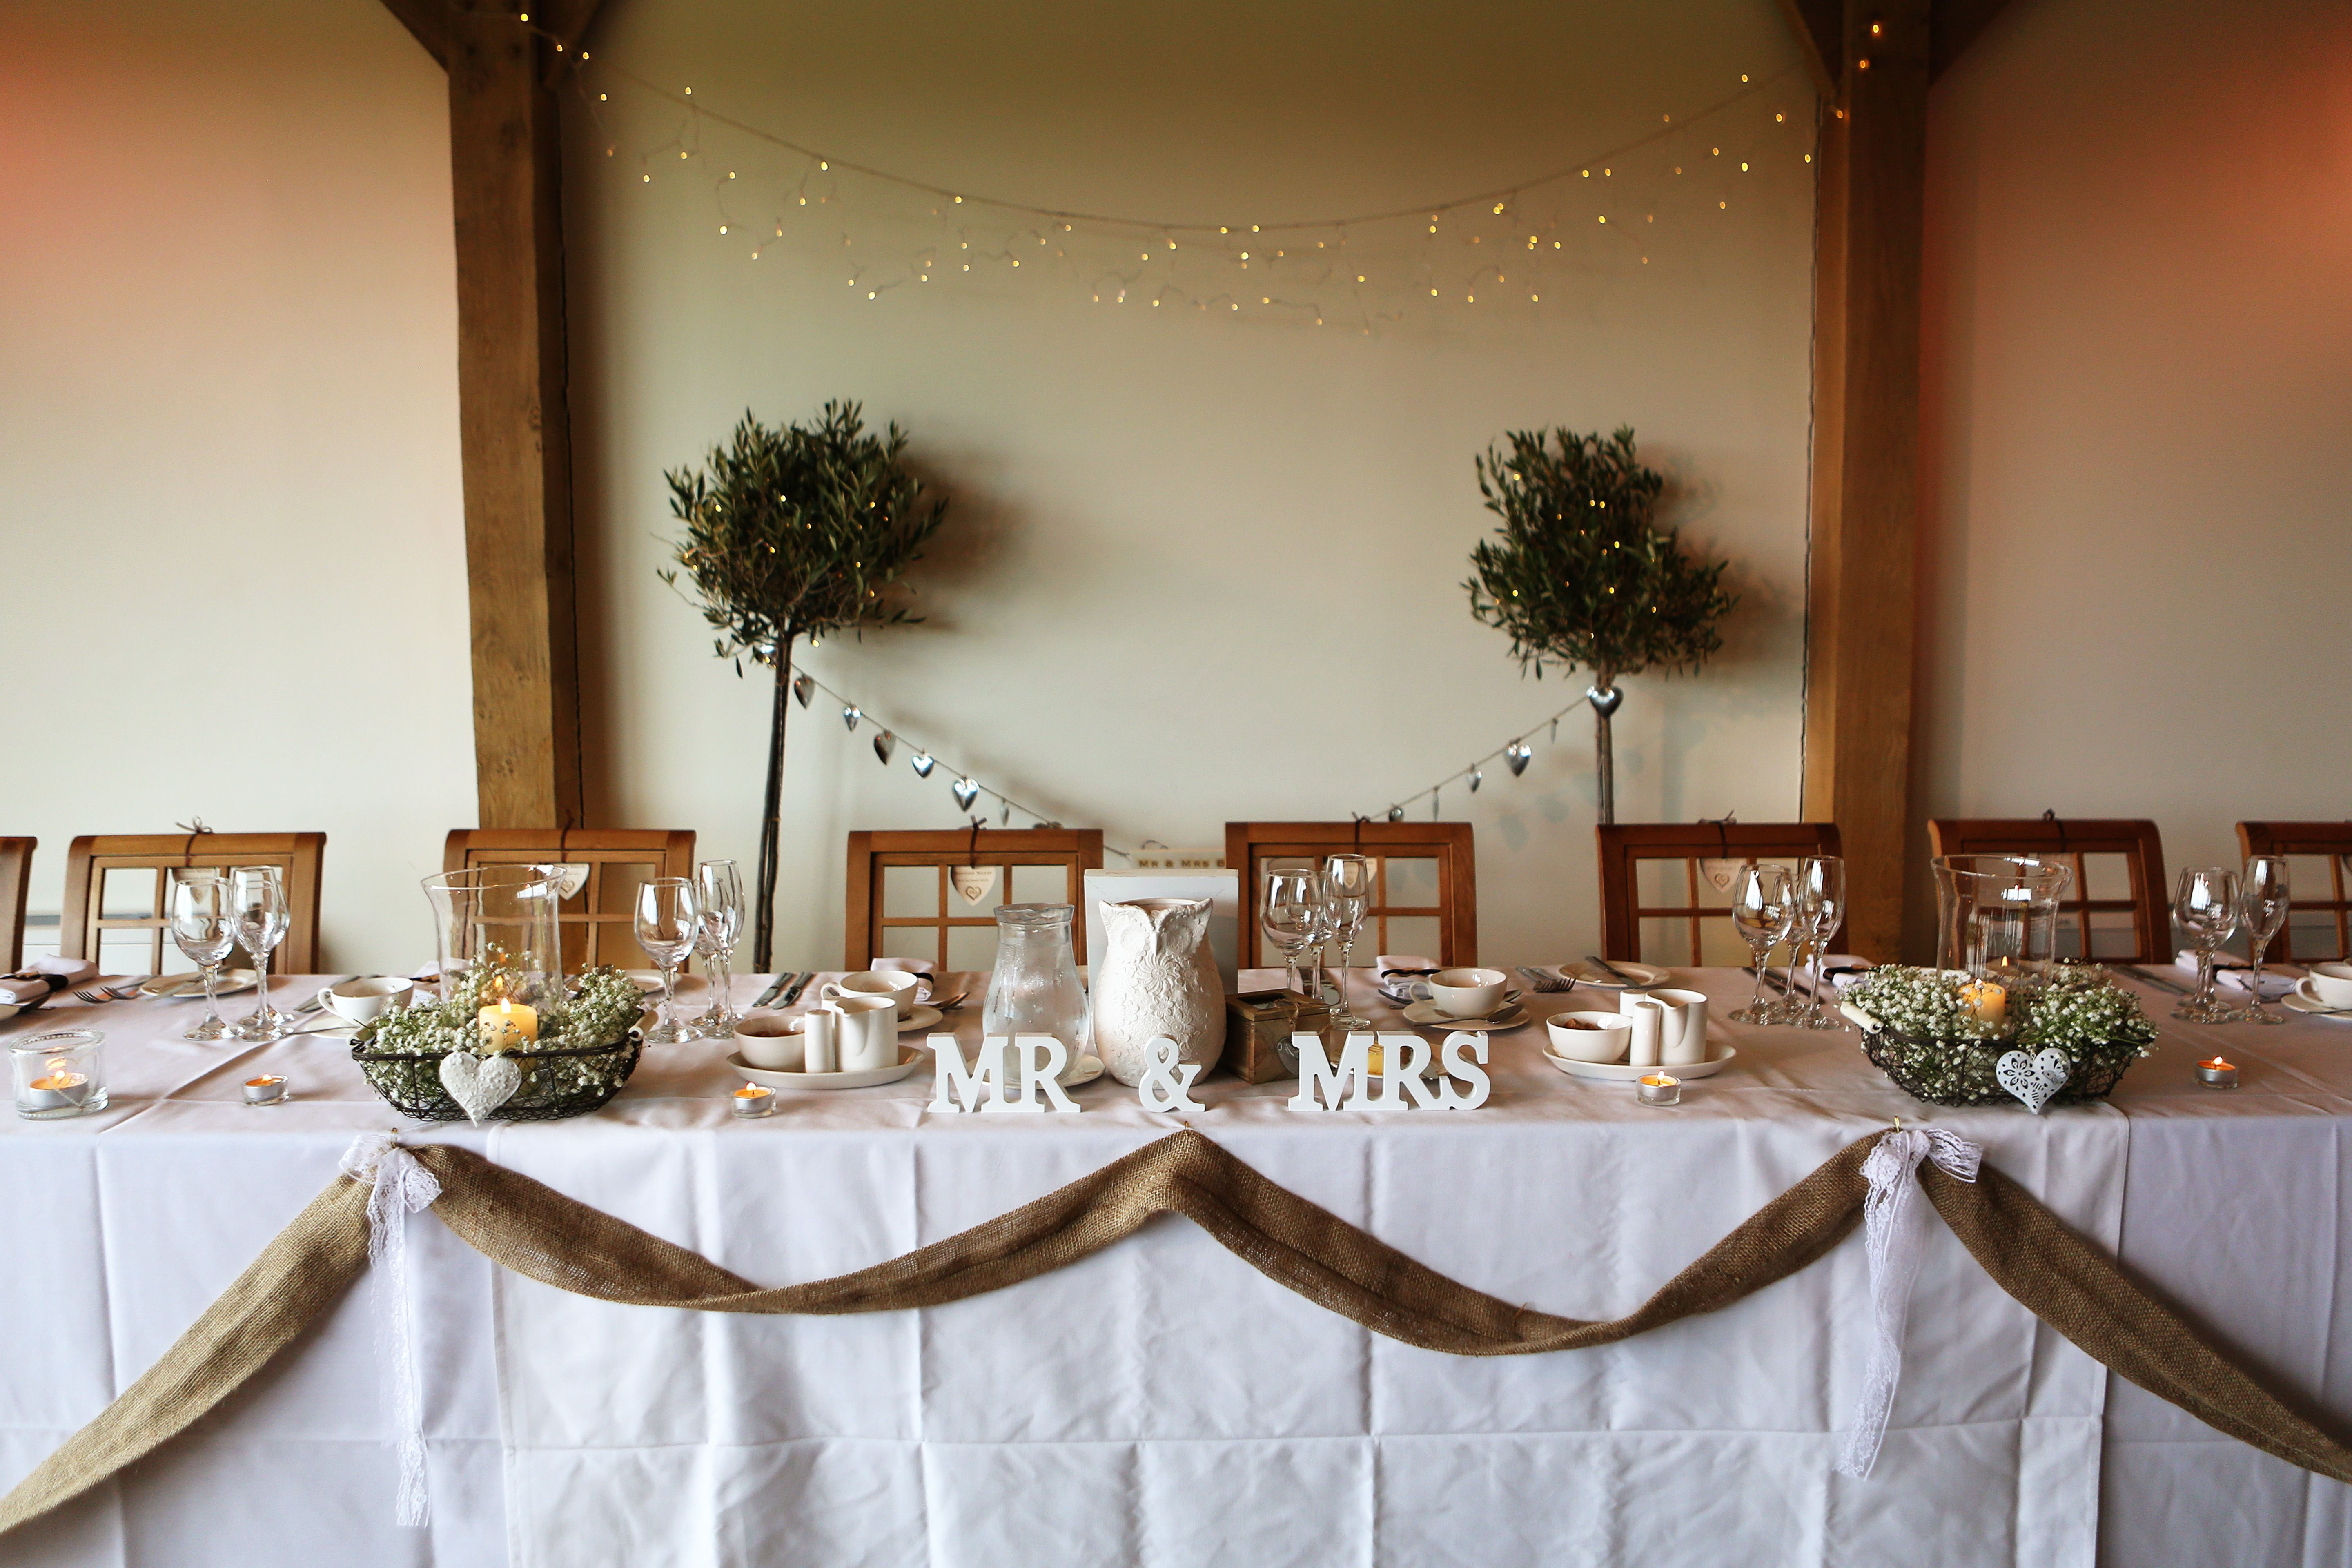 Rustic head table, Mr & Mrs, burlap | Head table wedding ...